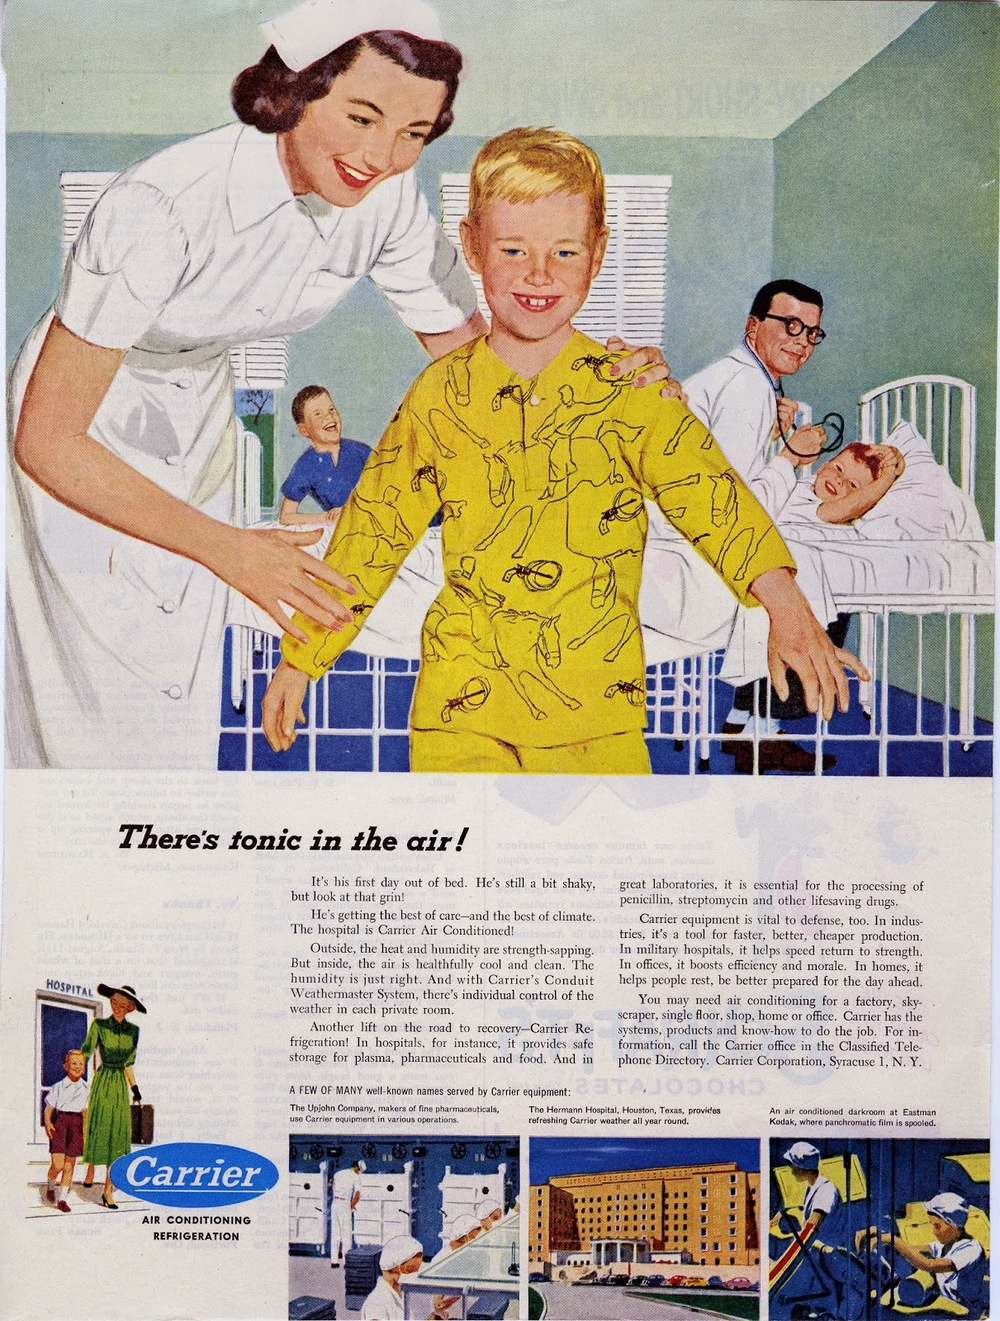 Mac Conner, advertisement illustration,  There's tonic in the air,  for the Carrier corporation. Circa 1955.